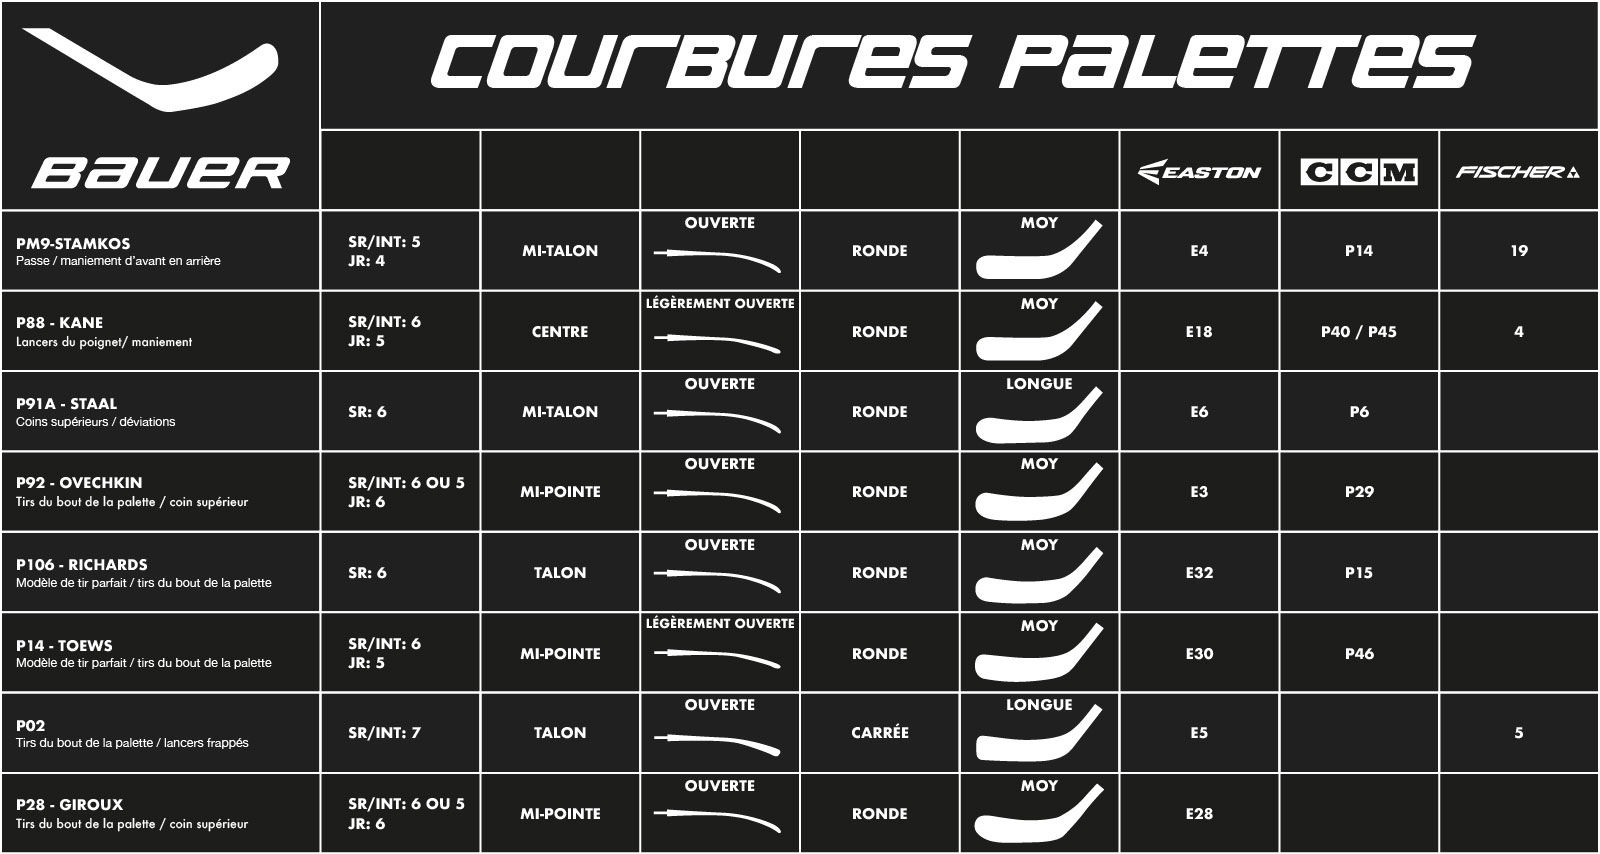 Courbures palettes Bauer Hockey Pro Patinage